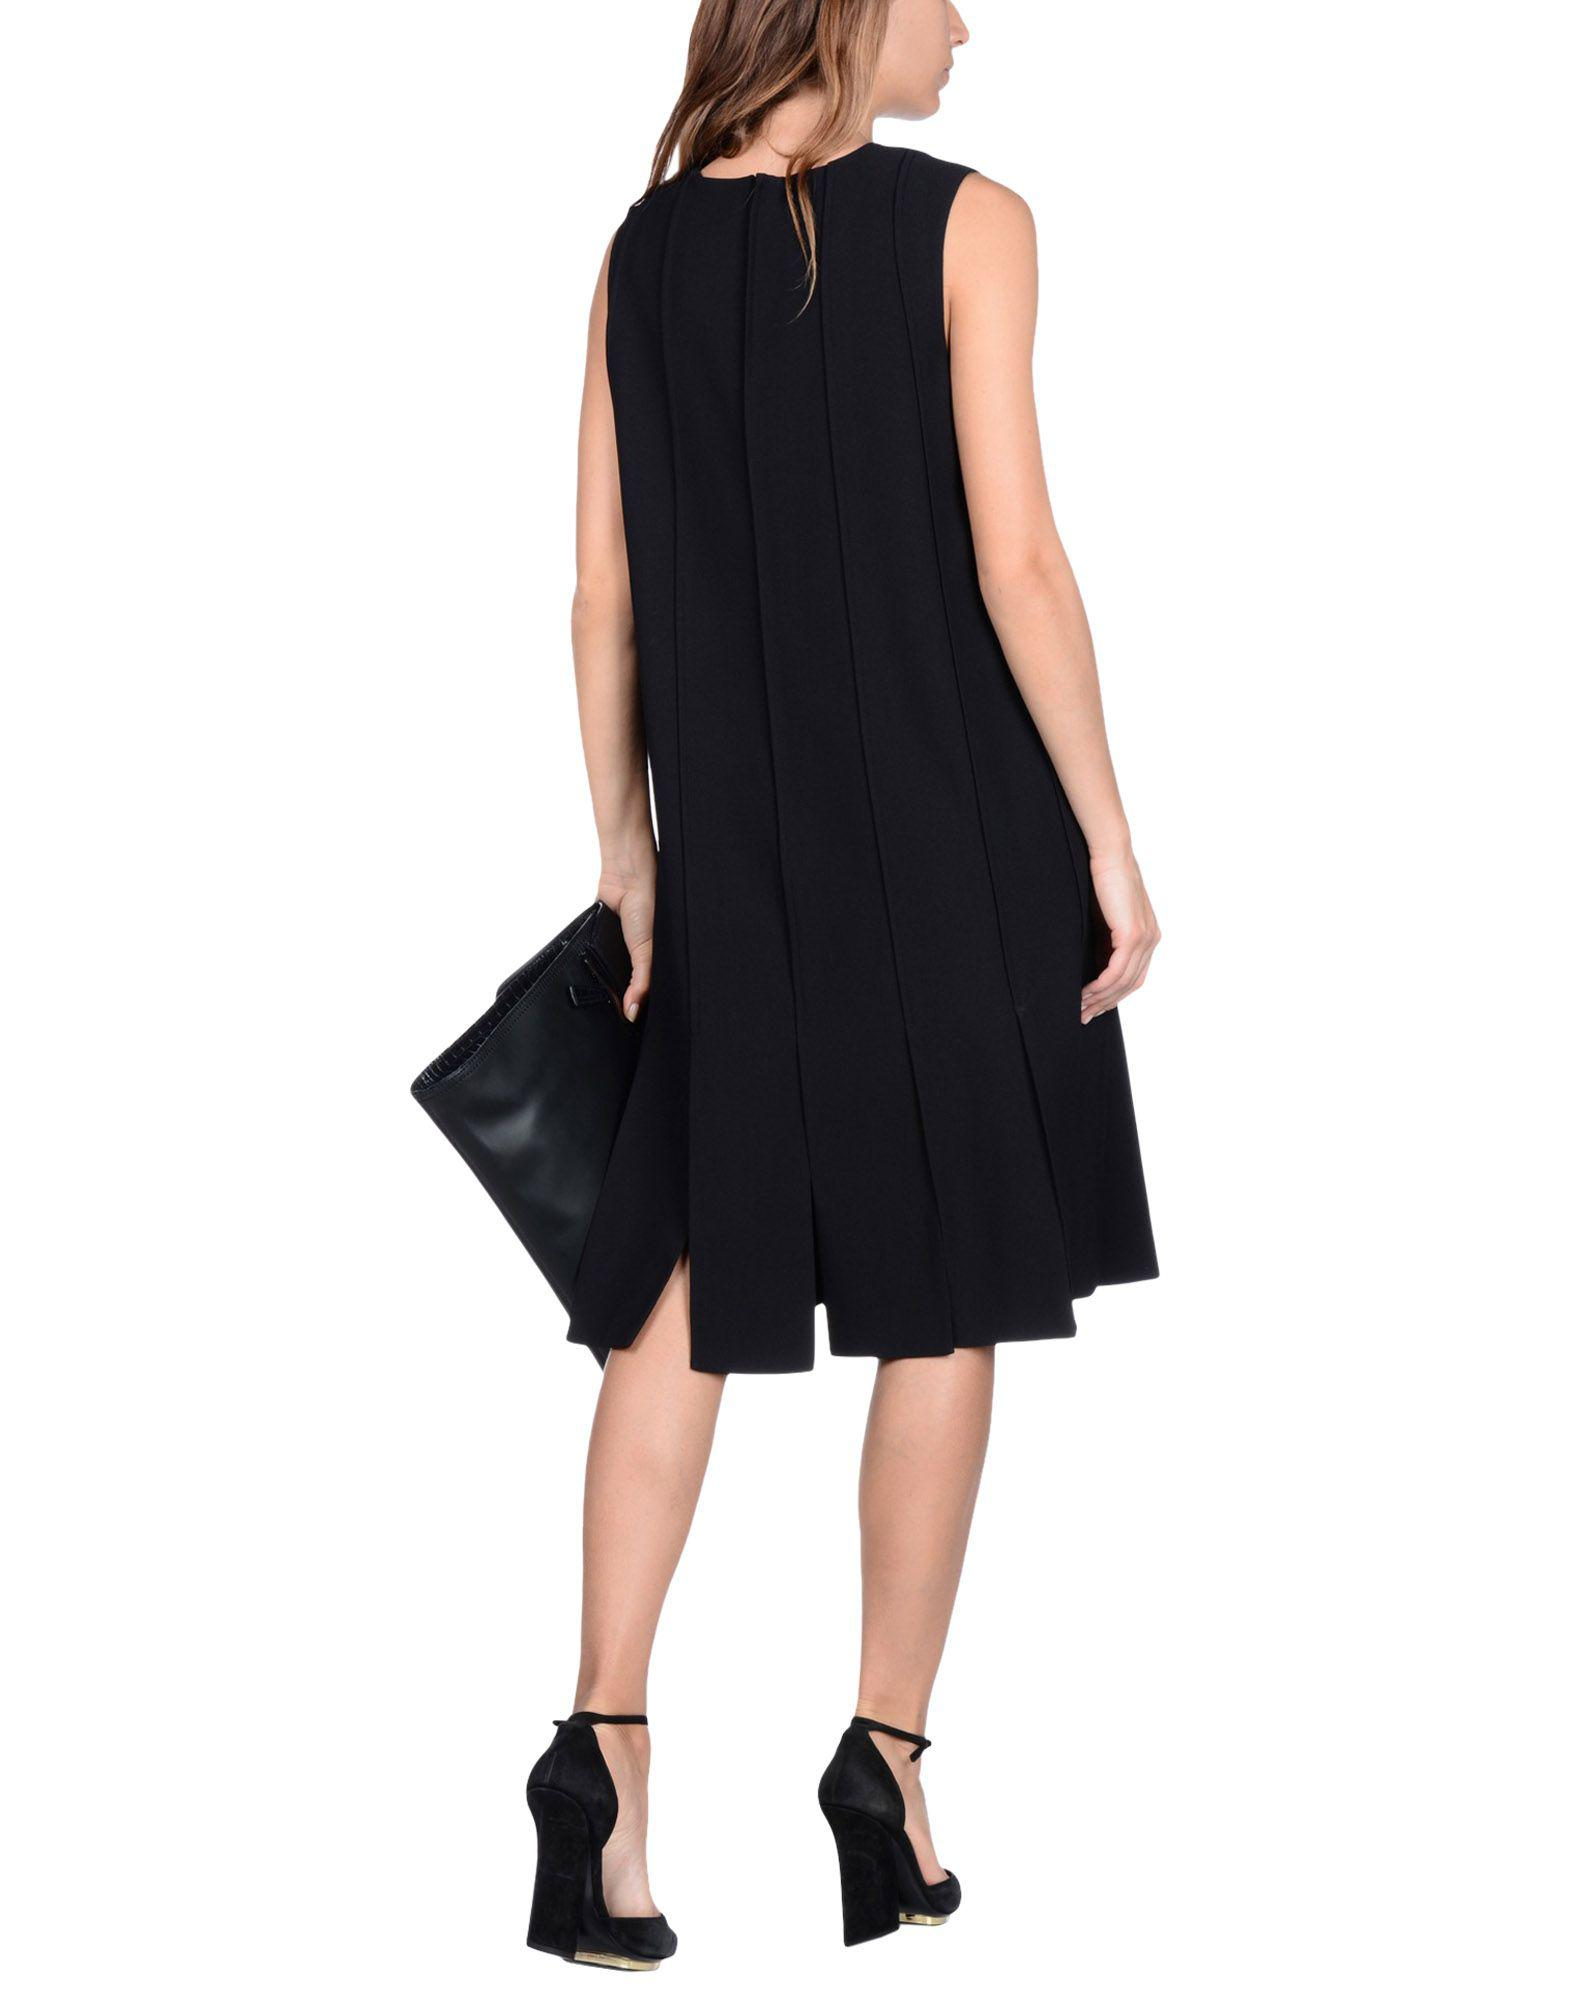 f429c313598 Lyst - Proenza Schouler Knee-length Dress in Black